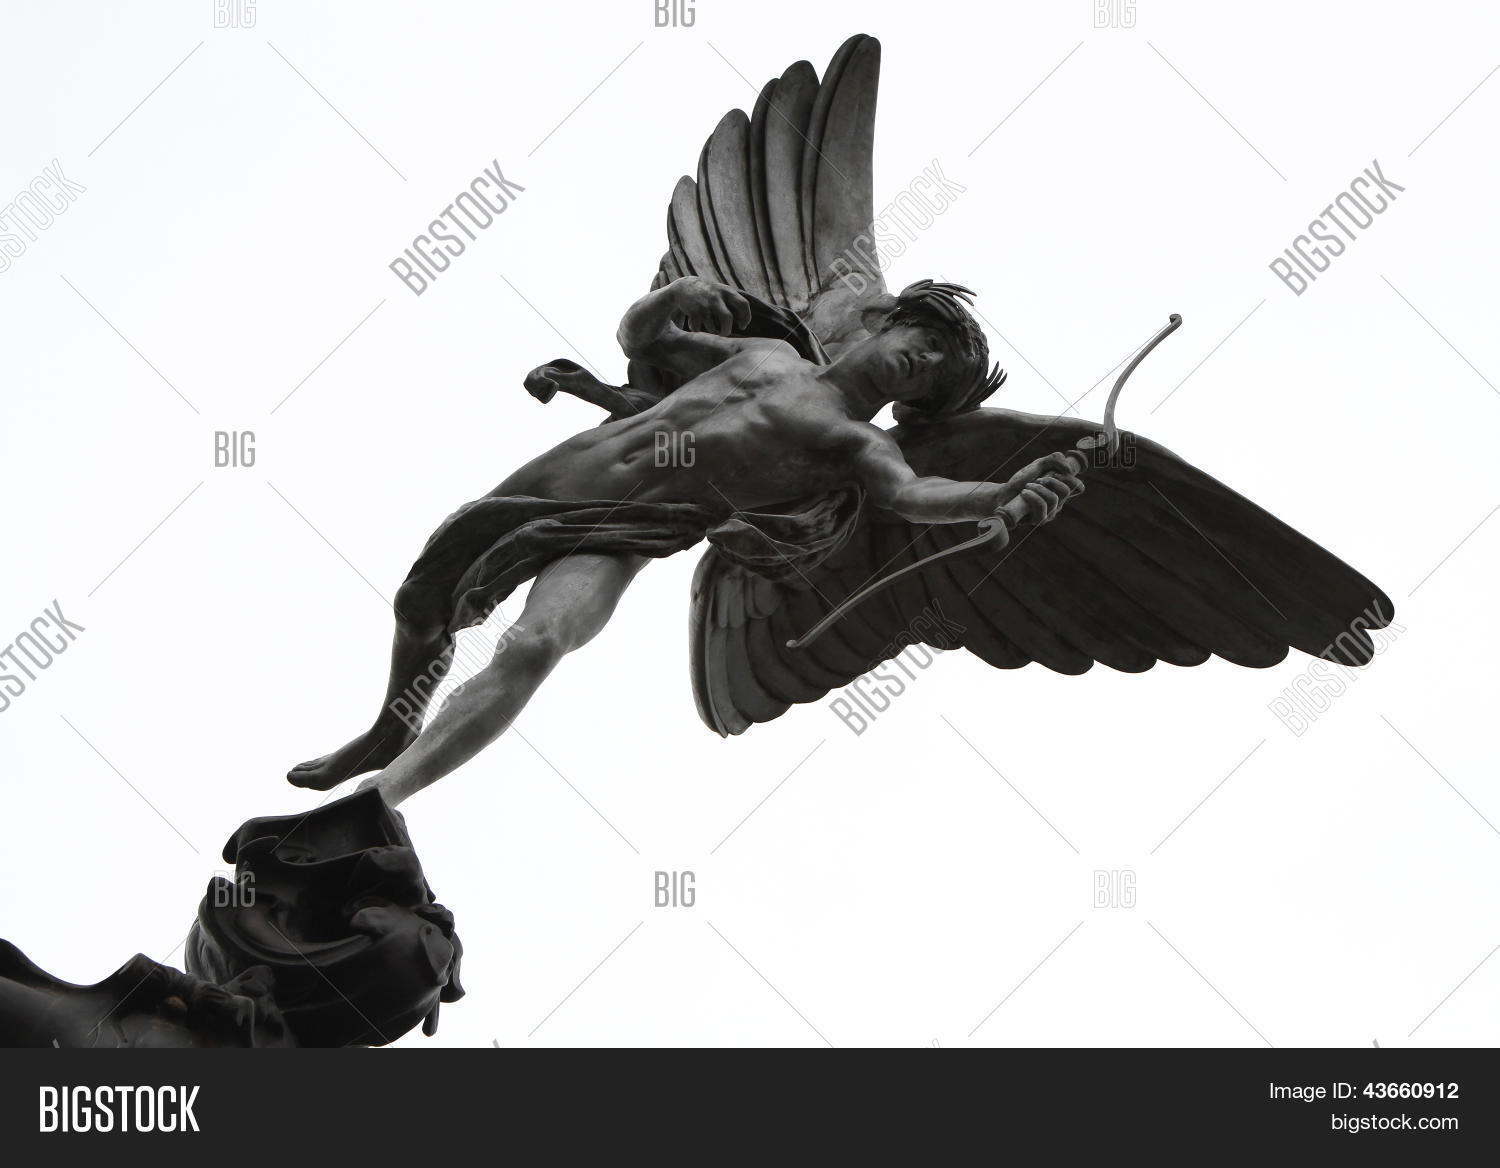 This statue of a winged archer poised with his bow is known as The Statue  of Eros the God of Love.